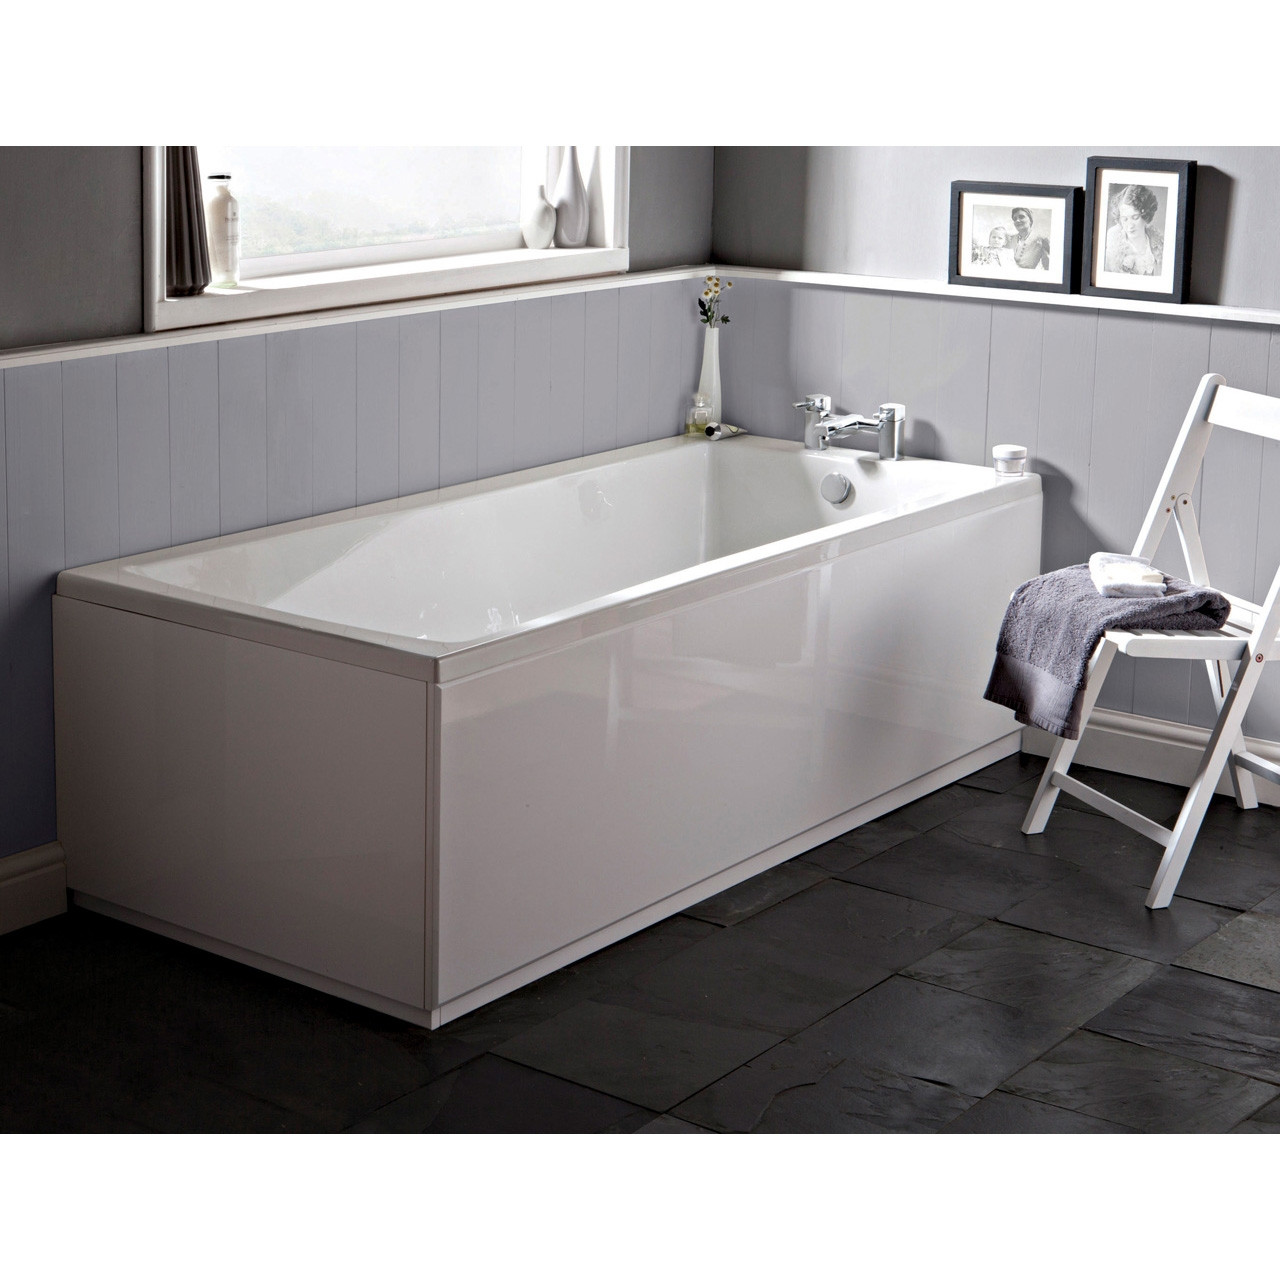 Premier Square Single Ended Bath 1800mm x 800mm - NBA414